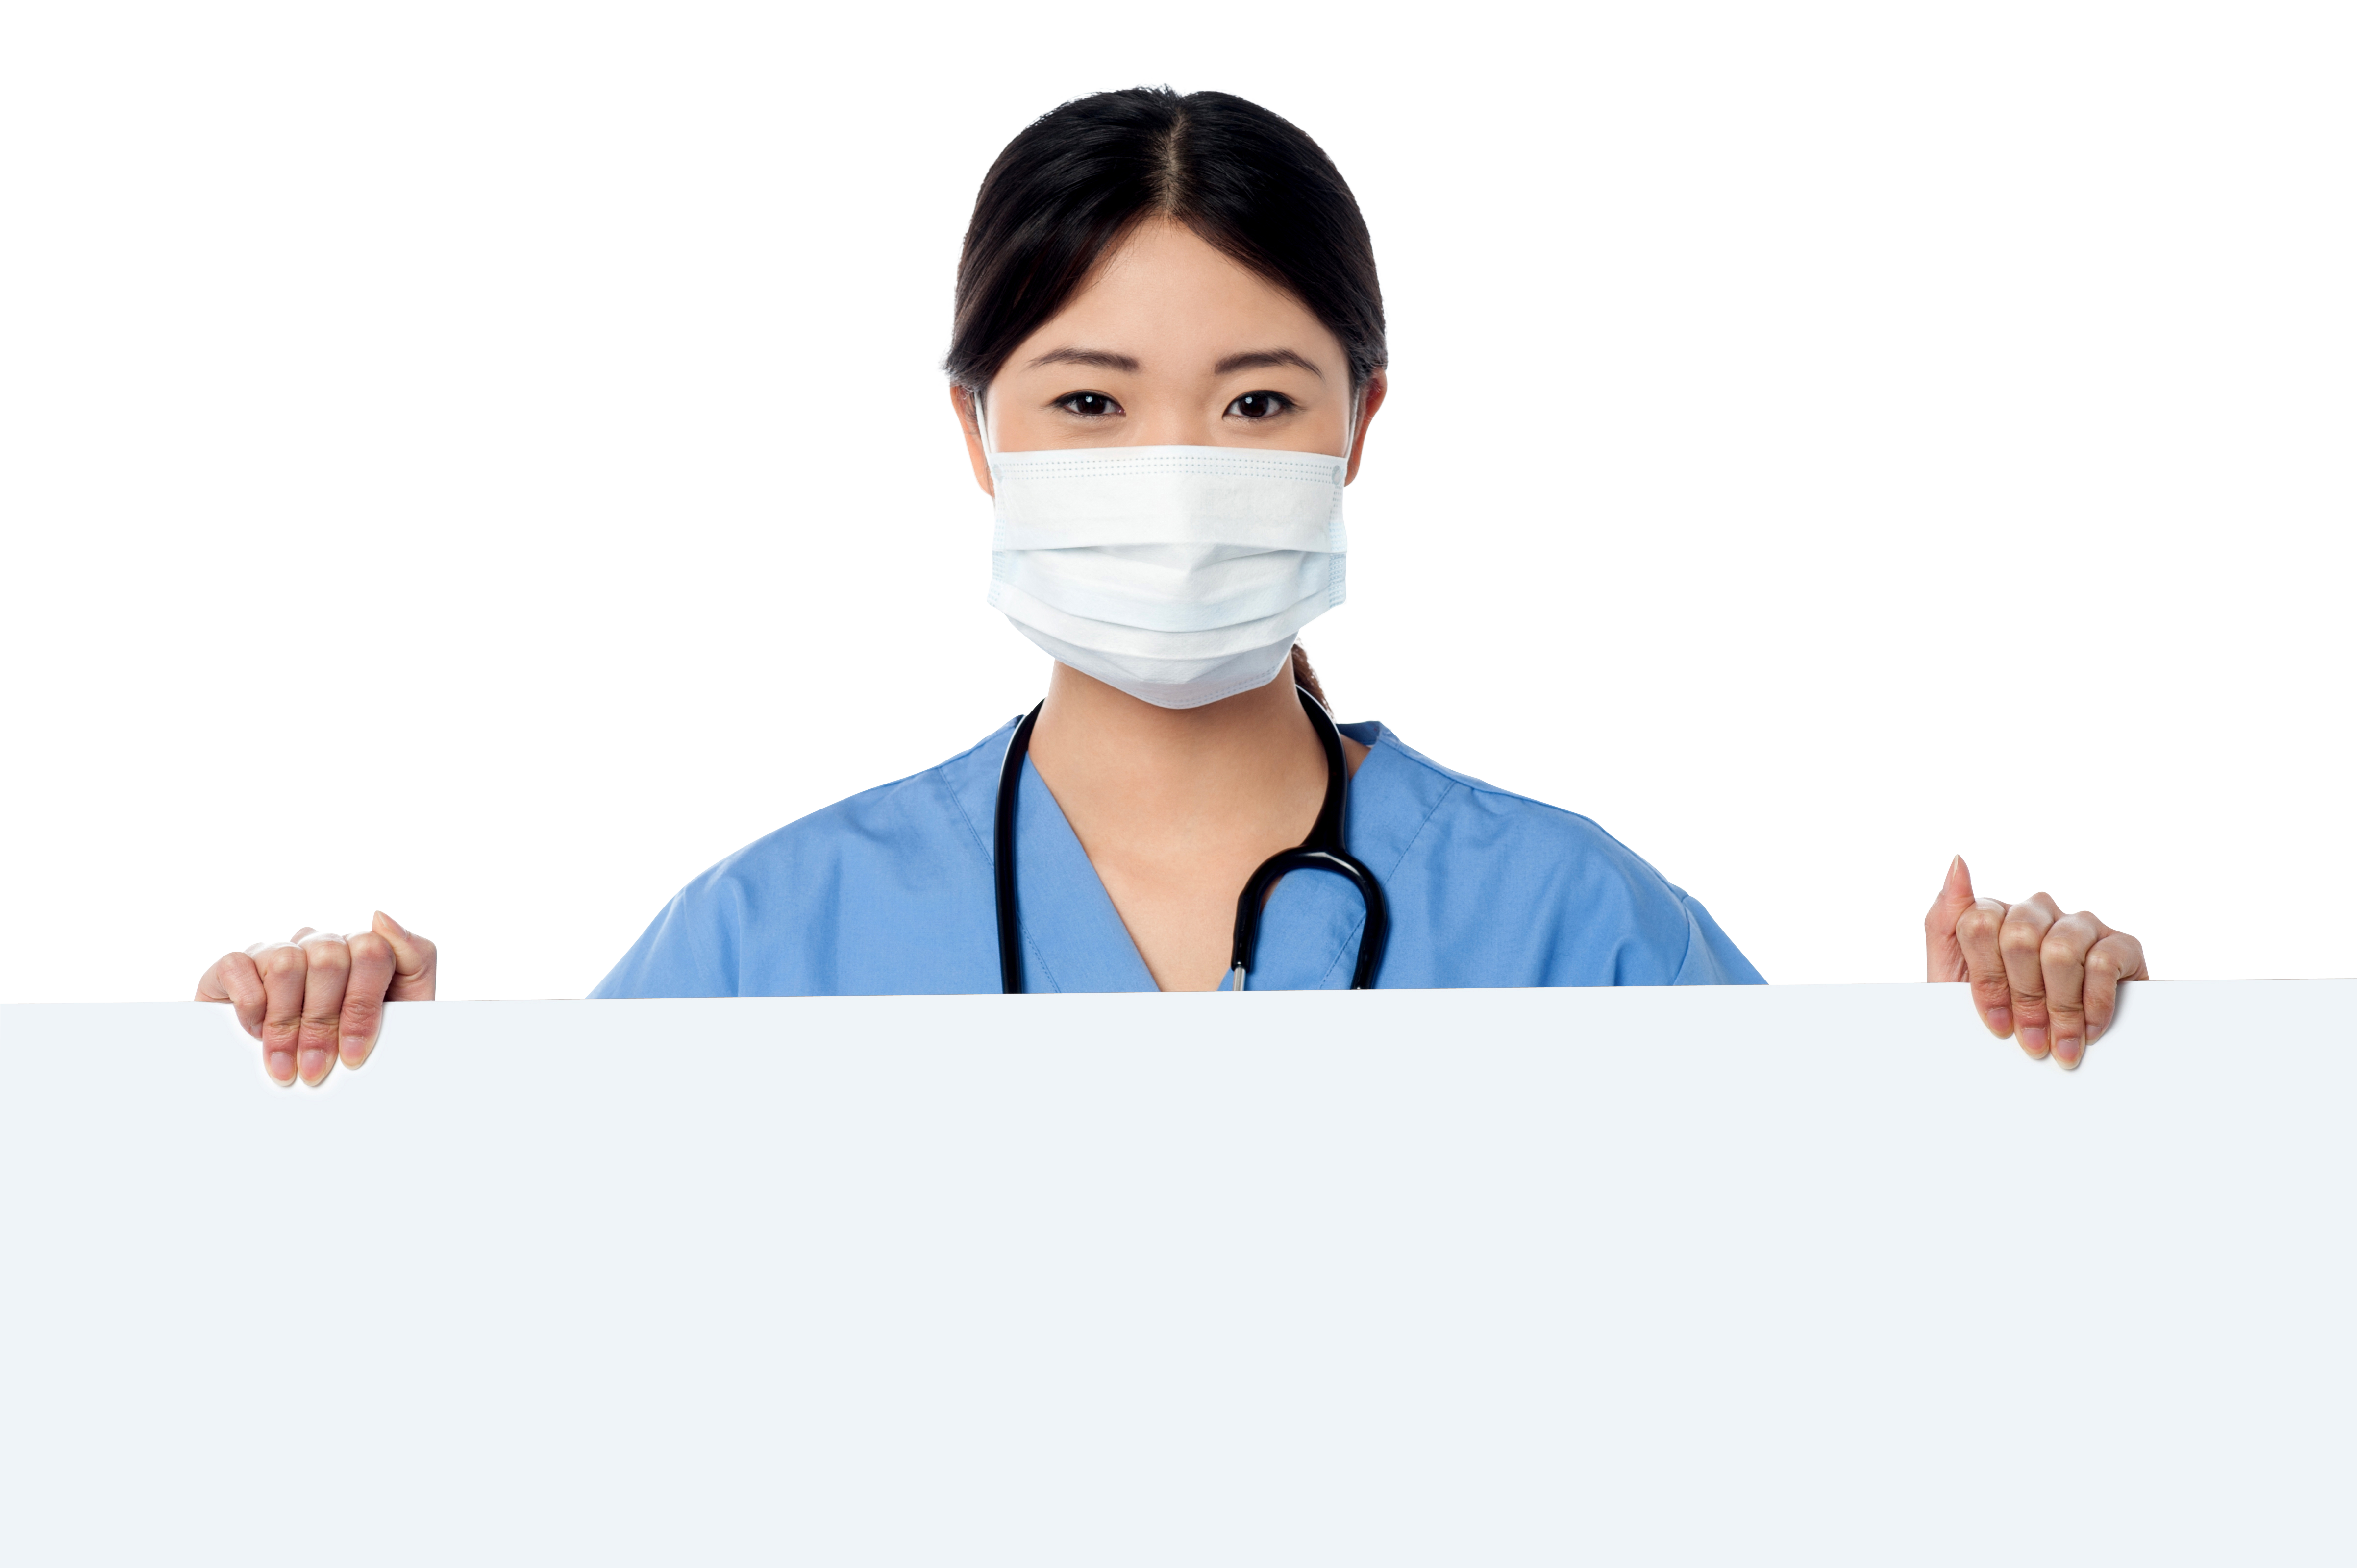 Doctor Holding Banner PNG Image